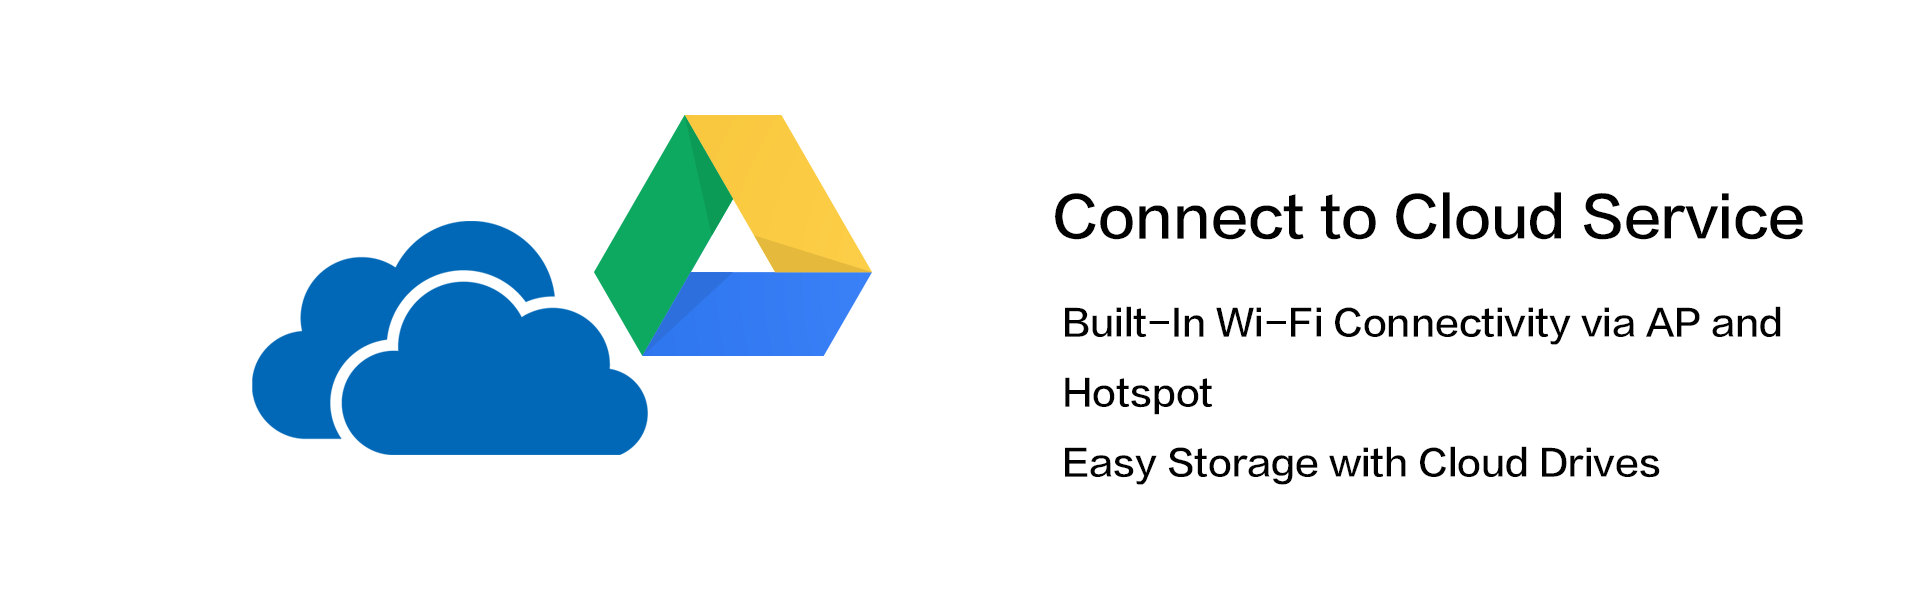 Built-In Wi-Fi Connectivity via AP and Hotspot,Easy Storage with Cloud Drives